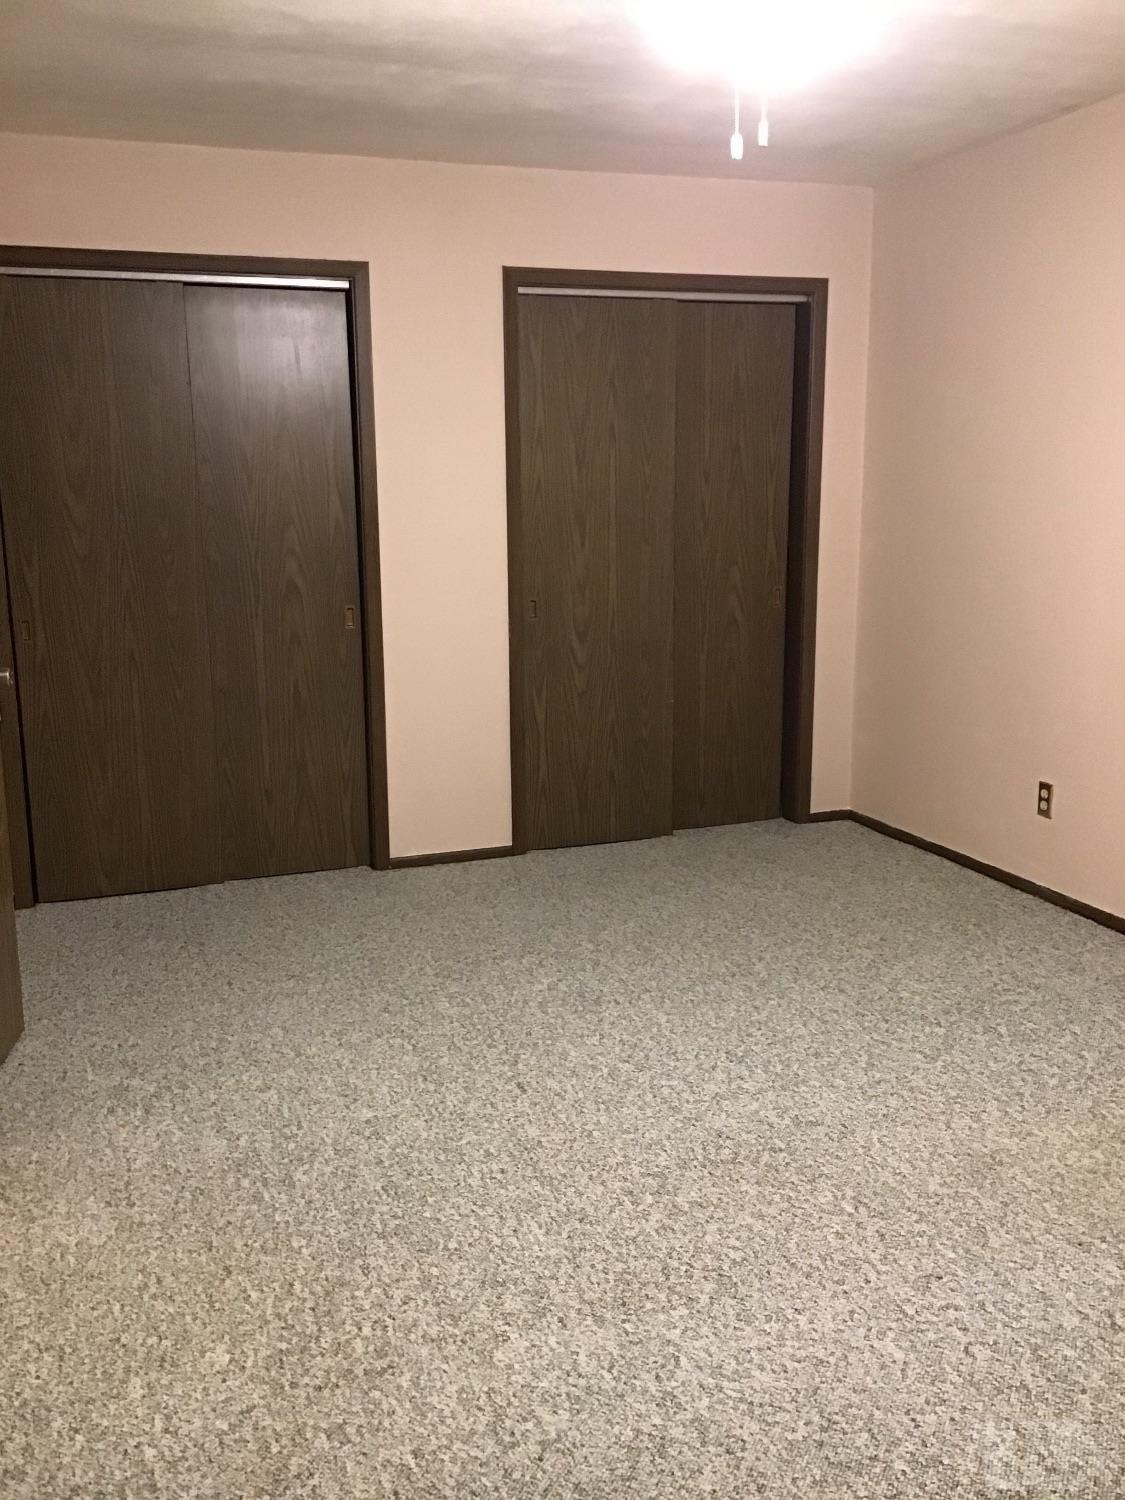 1507 Third Street, Vinton, Iowa 52349, 1 Bedroom Bedrooms, ,1 BathroomBathrooms,Residential,For Sale,Third Street,35017627